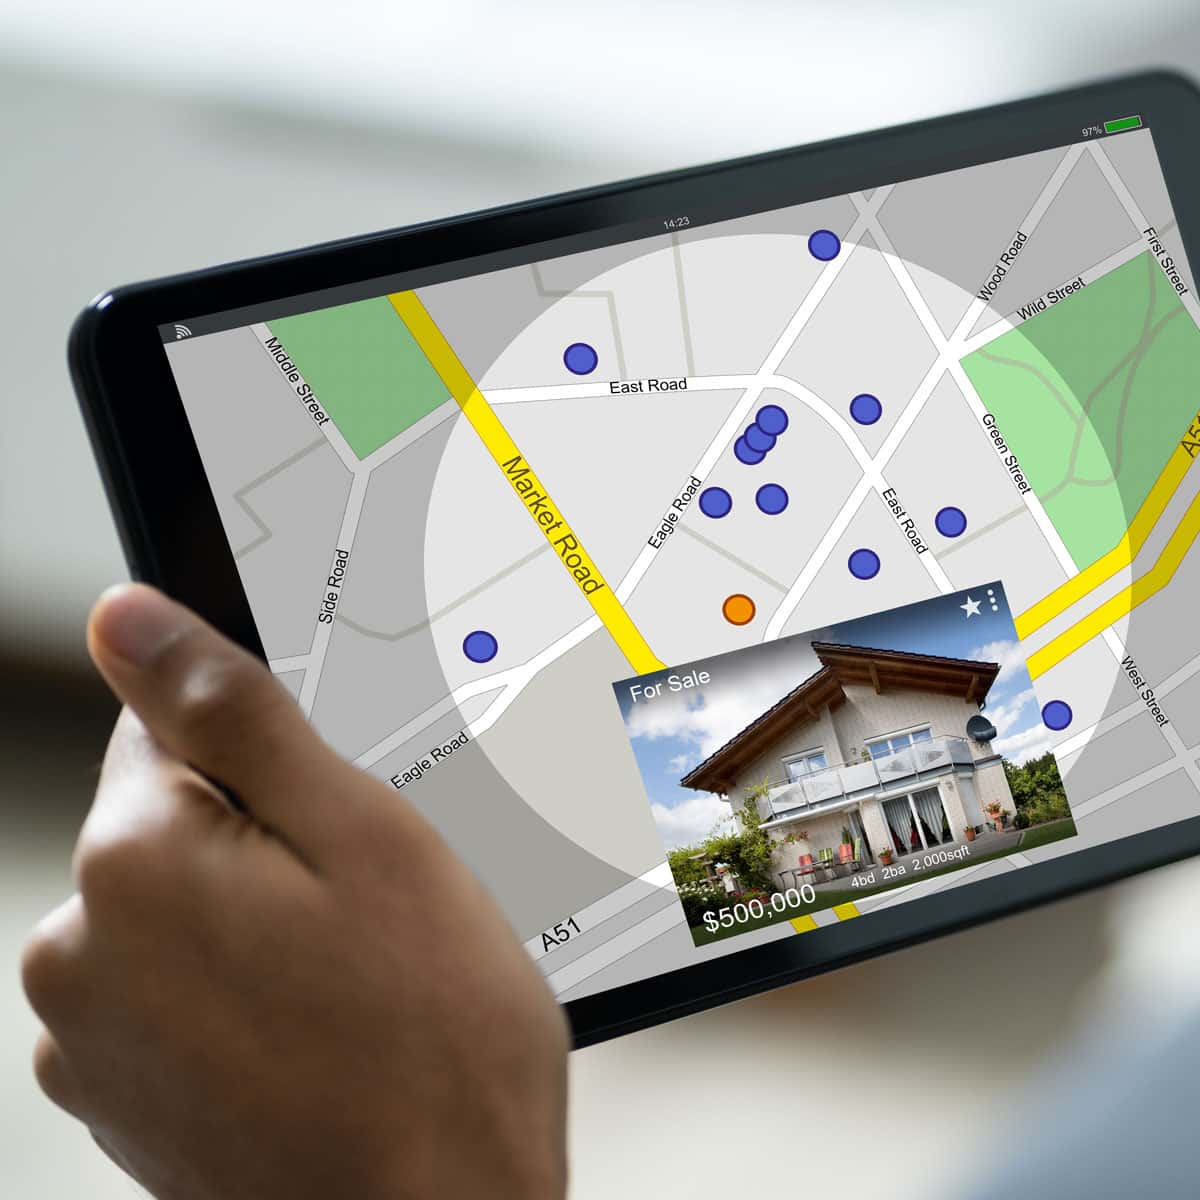 Someone using a tablet to look at houses in the area on a map